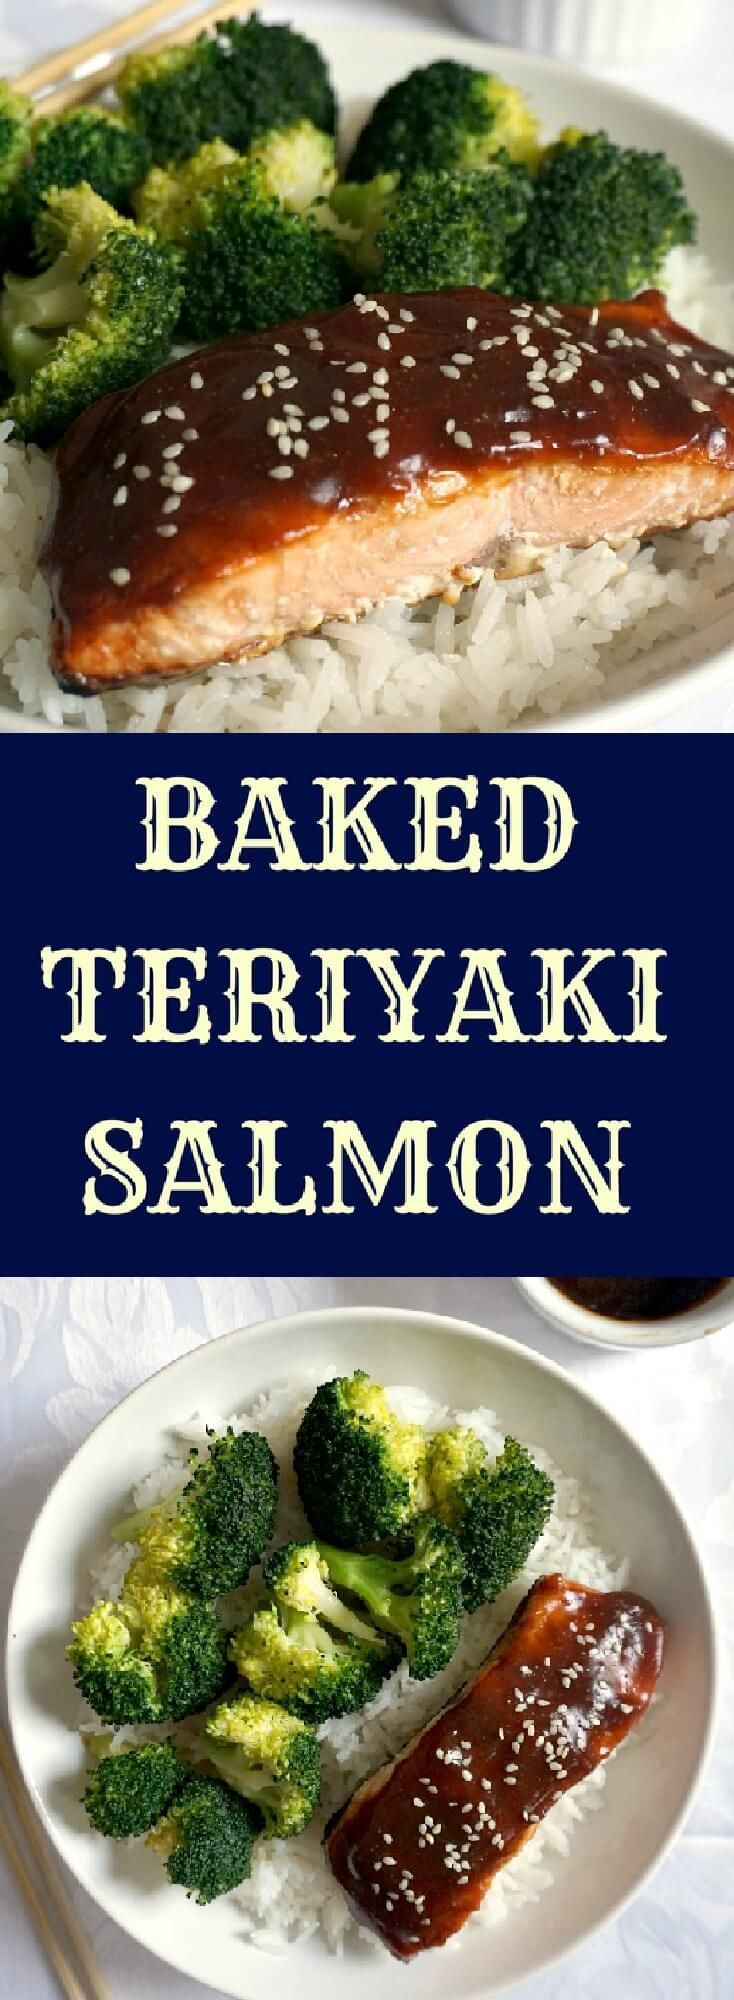 Baked teriyaki salmon with garlicky broccoli on a bed of rice, a delicious Japanese recipe that is healthy and nutritious. The homemade teriaky sauce is way better than any store-bought sauce, and it gives the salmon a delightful Asian touch. Ready in about 20 minutes.